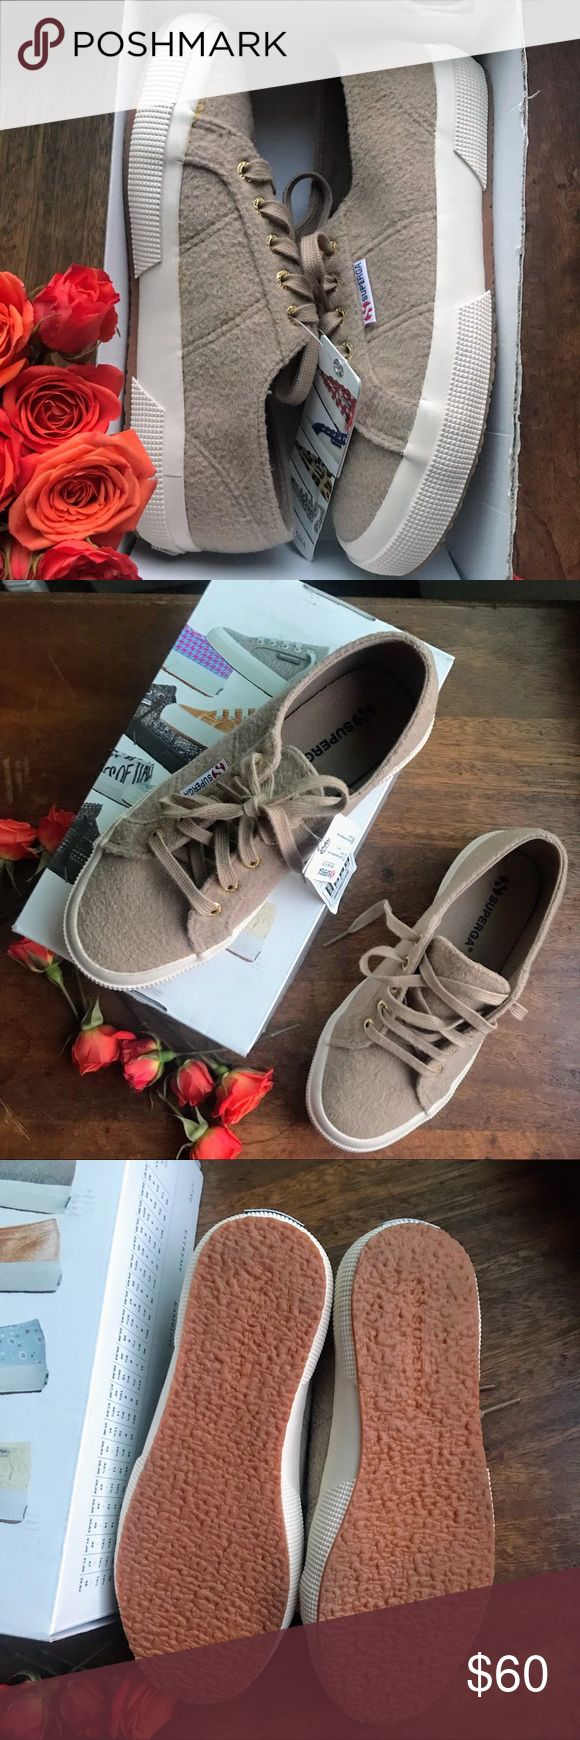 "HP🎉NIB Superga sneakers • BNWT attached, in box (no lid) Superga 2750 Polywool sneakers • Size 37.5 or women's US size 7 according to box but run big and fit more like a US 7.5  • Color is beige (also tagged Tan, Brown, Coffee, Cream) • The wool fabric upper gives these classic sneakers the warm and ""fuzzies."" Pair them with your favorite jeans, shorts, skirts, dresses— I have them in a camo print, so comfy!! Please know your size in this brand, Posh doesn't approve returns due to size and…"